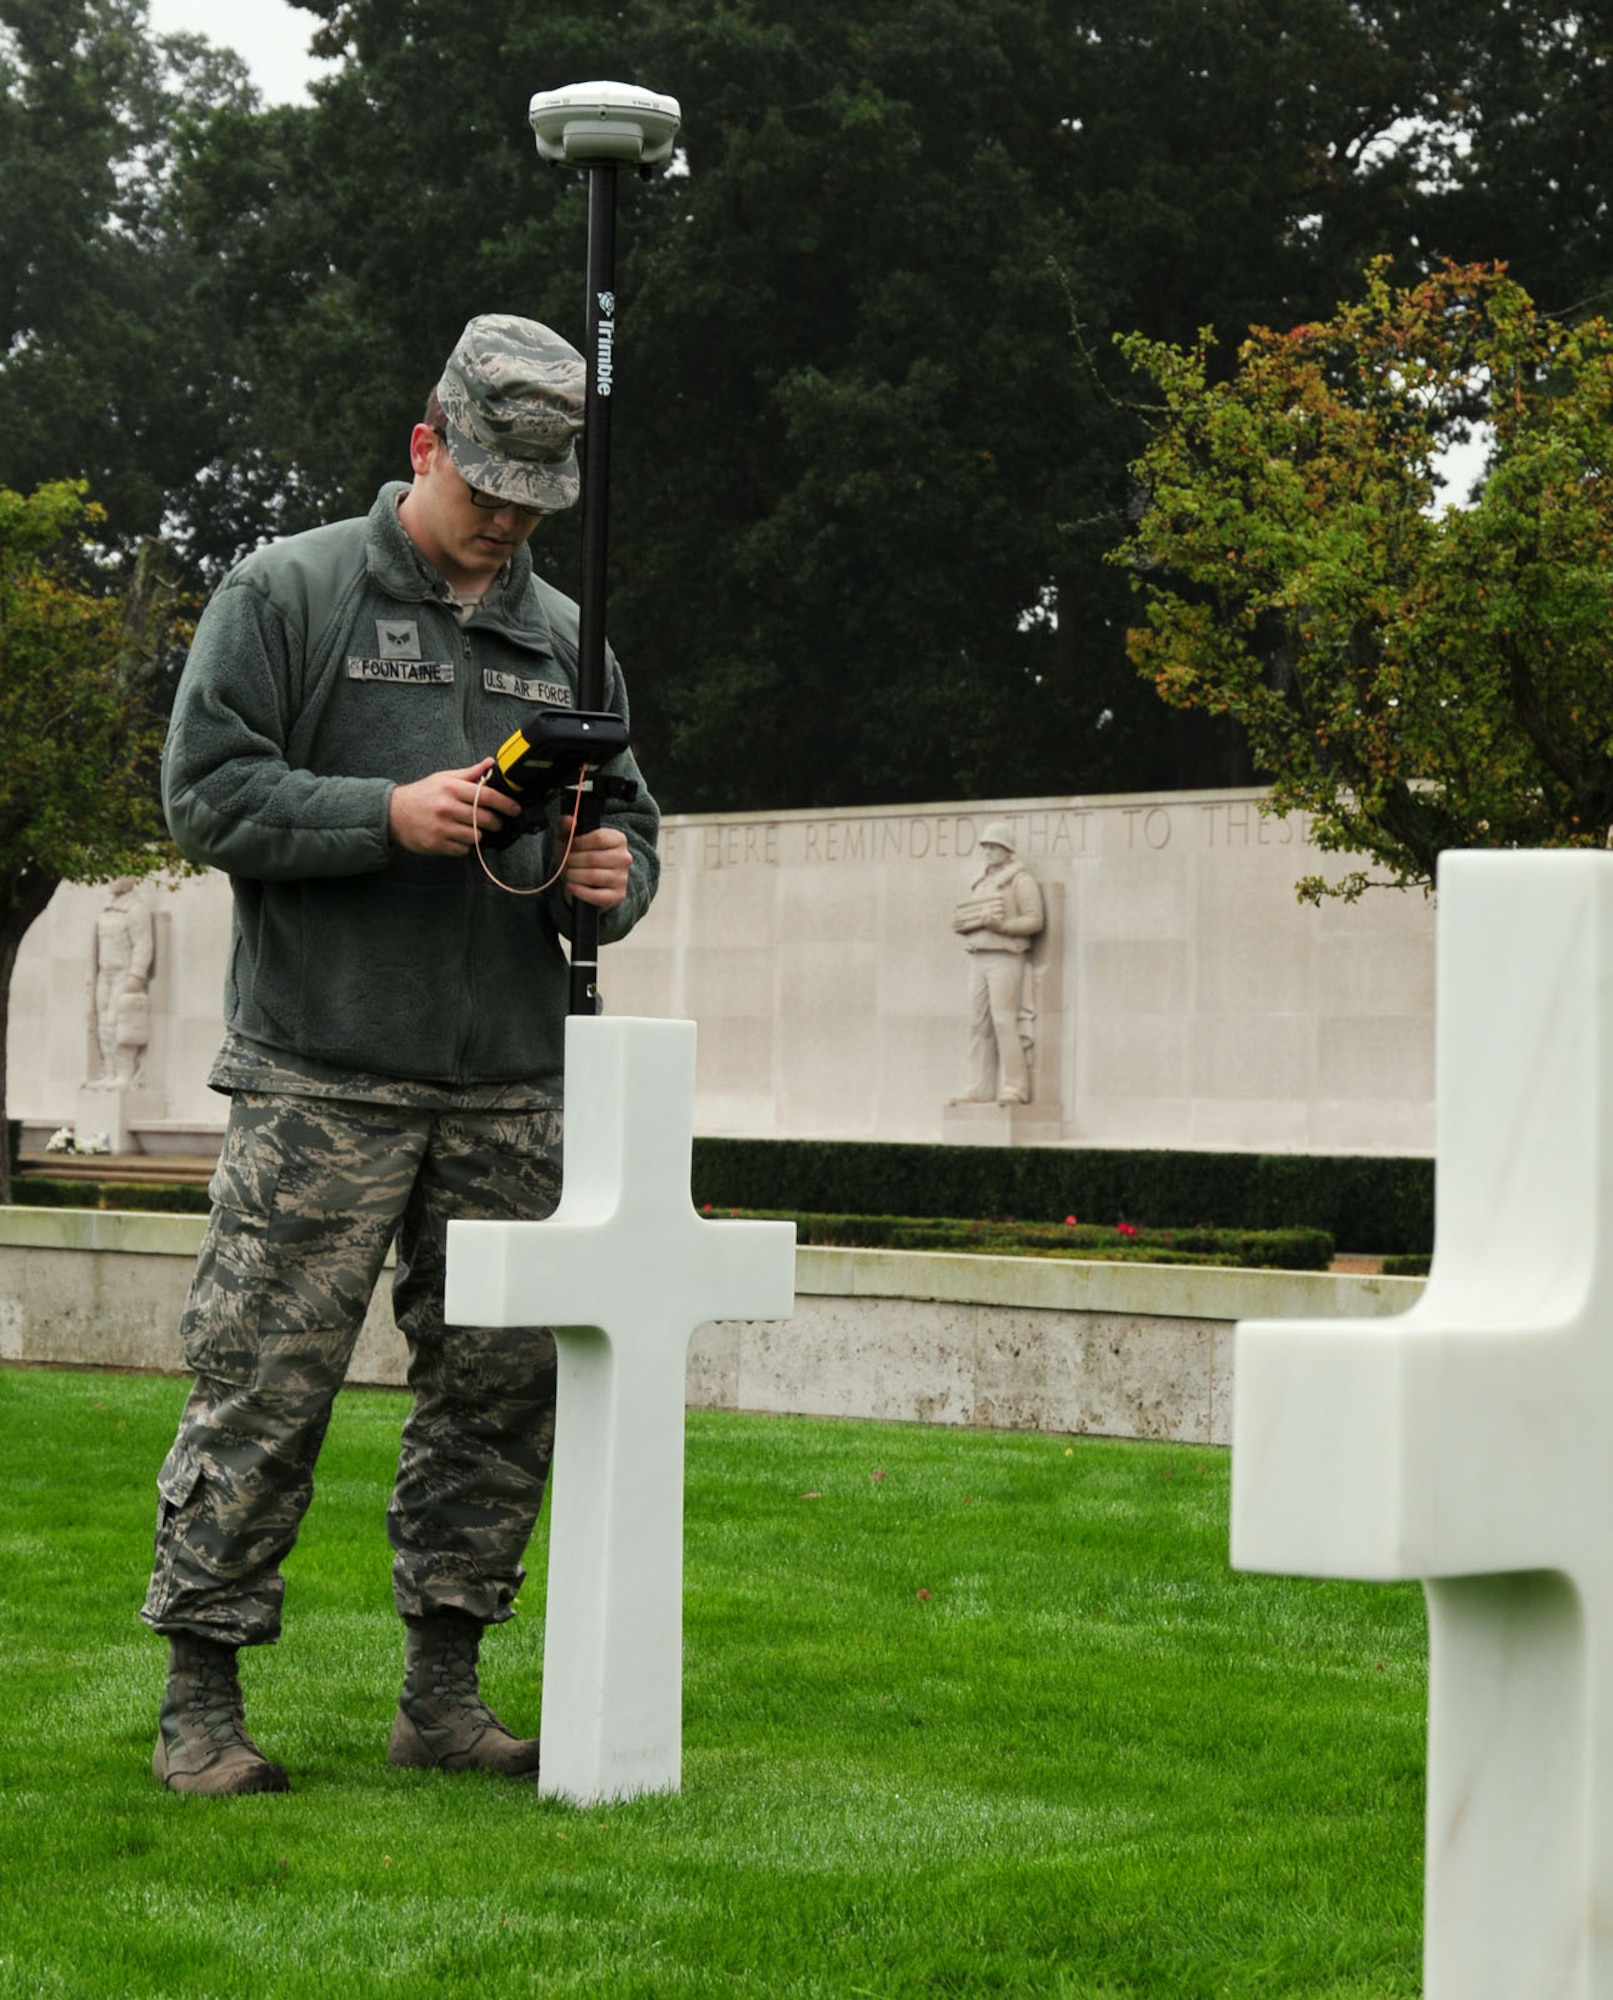 Senior Airman Logan Fountaine uses GPS base equipment Oct. 16, 2013, to determine grid coordinates and measure latitude, longitude and elevation of headstones at Madingley American Cemetery, near Cambridge, England. Airmen from the 100th CES engineering flight were taking GPS readings to annotate the exact location of each individual headstone. All the data from the project will be used to create an electronic map that allows families and friends of those Americans lost in World War II to pinpoint the location of their resting place. Fountaine is a 100th Civil Engineer Squadron engineering flight journeyman.